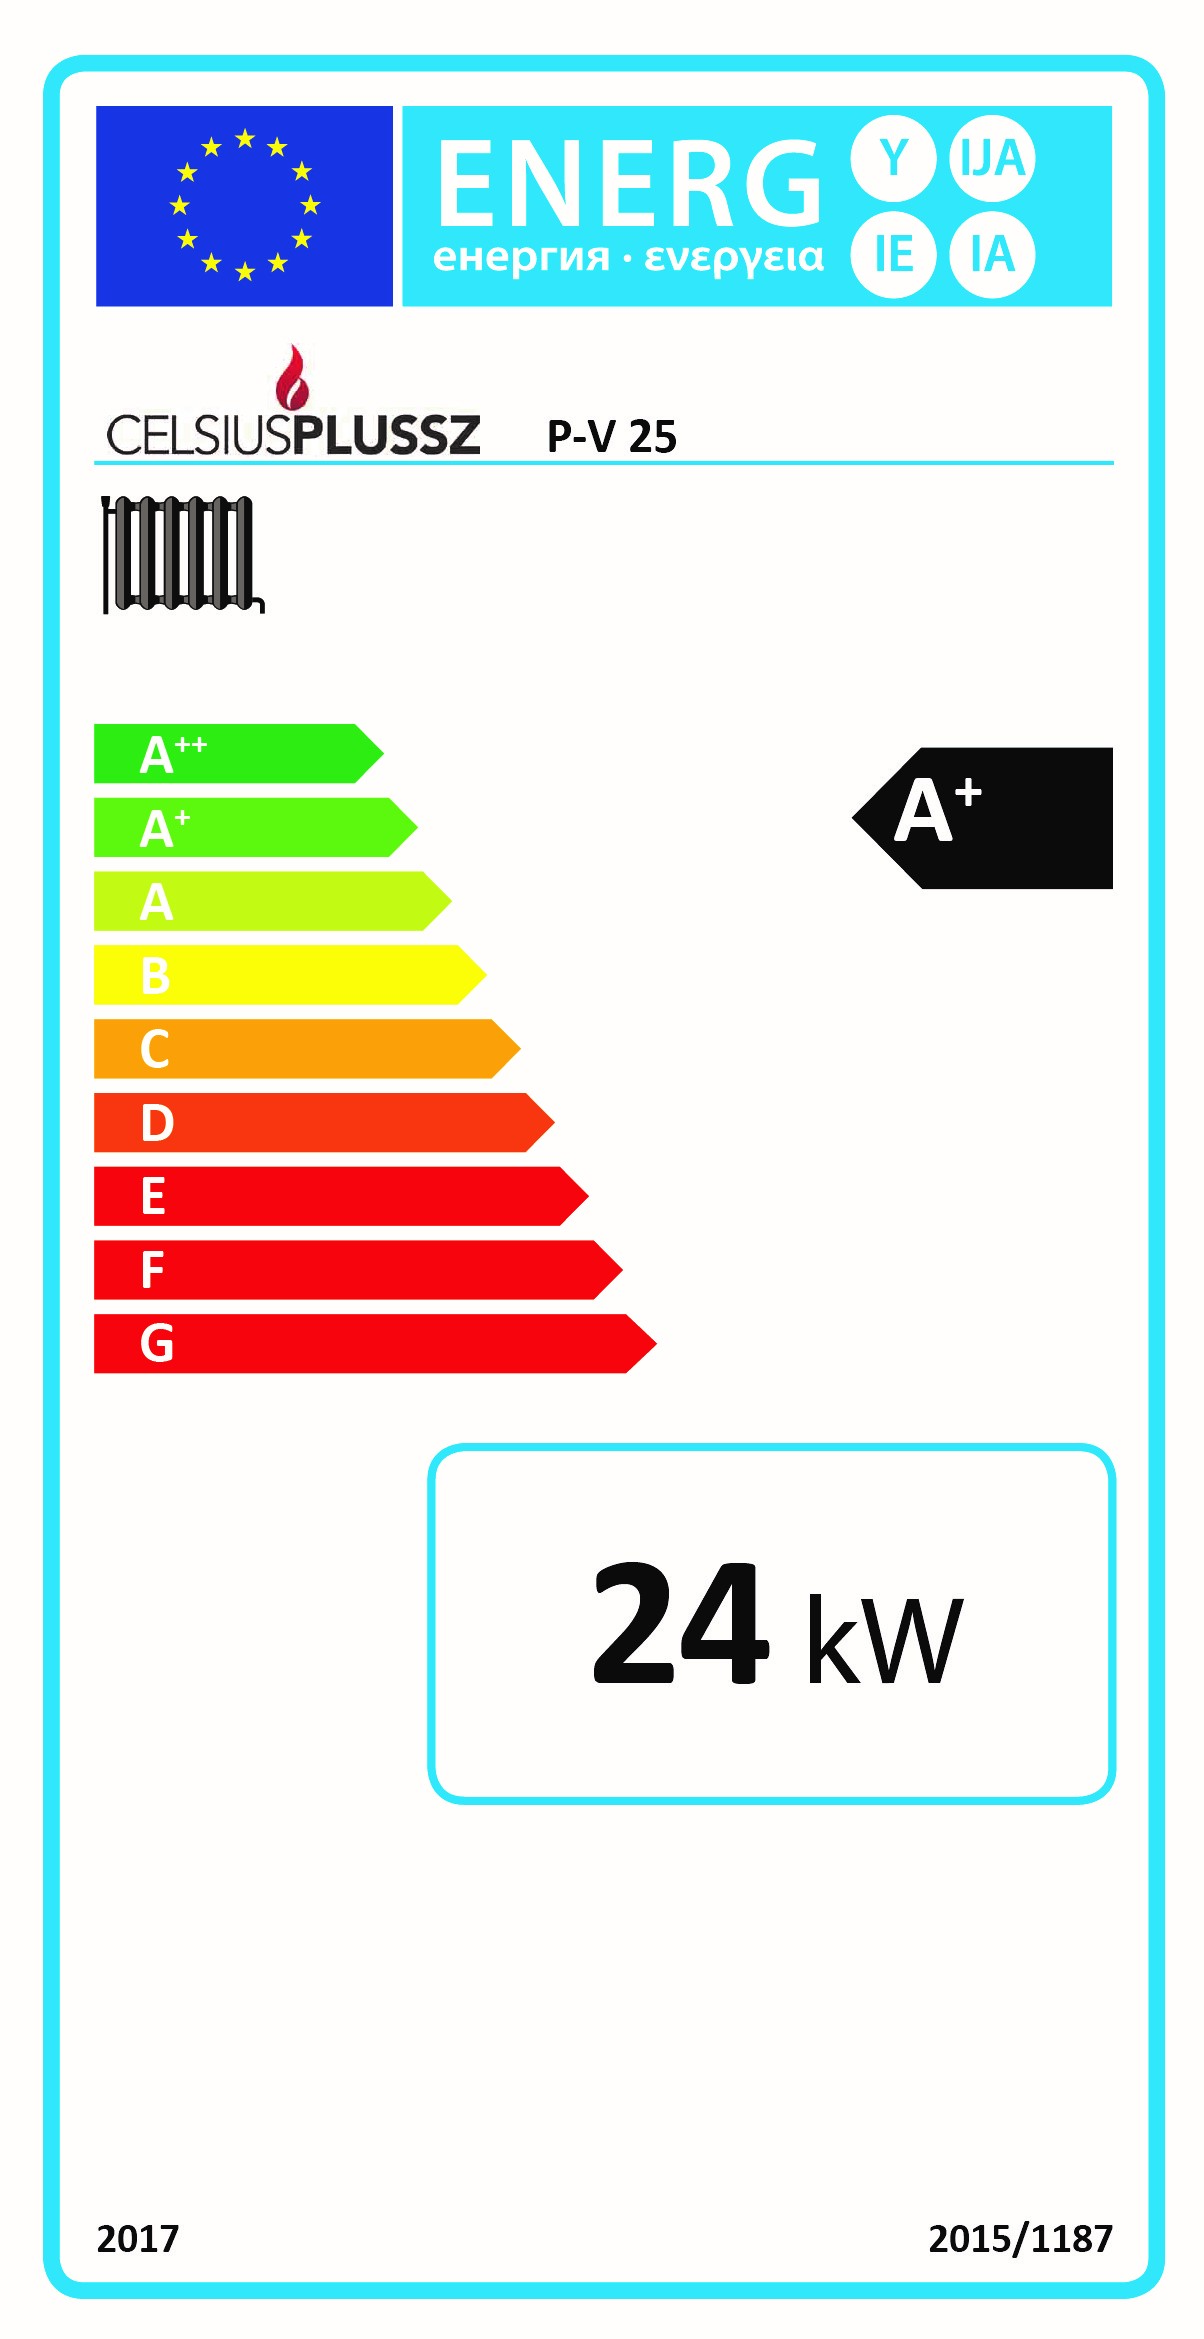 Celsius P-V 25 energy label